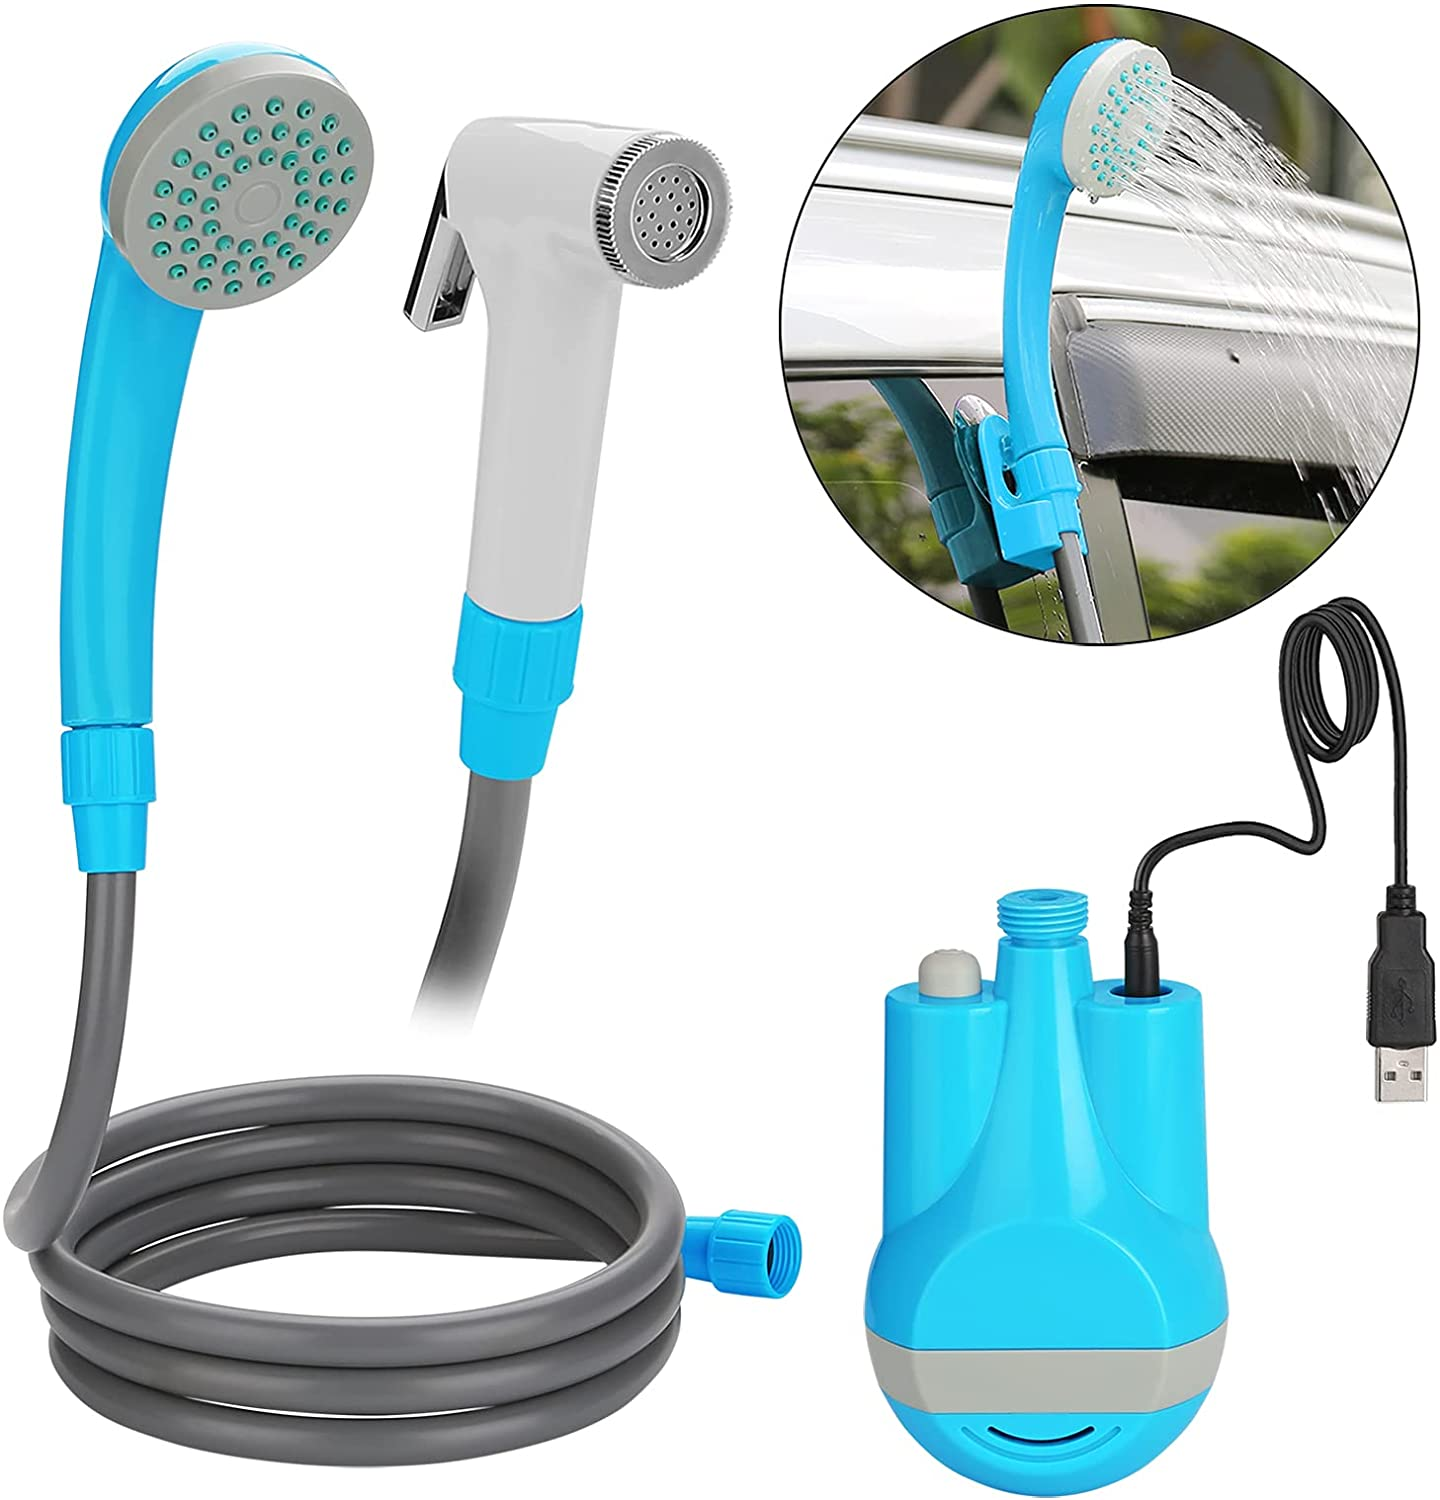 Super special price mart WADEO Portable Shower Camping Camp Outdoor E Pump